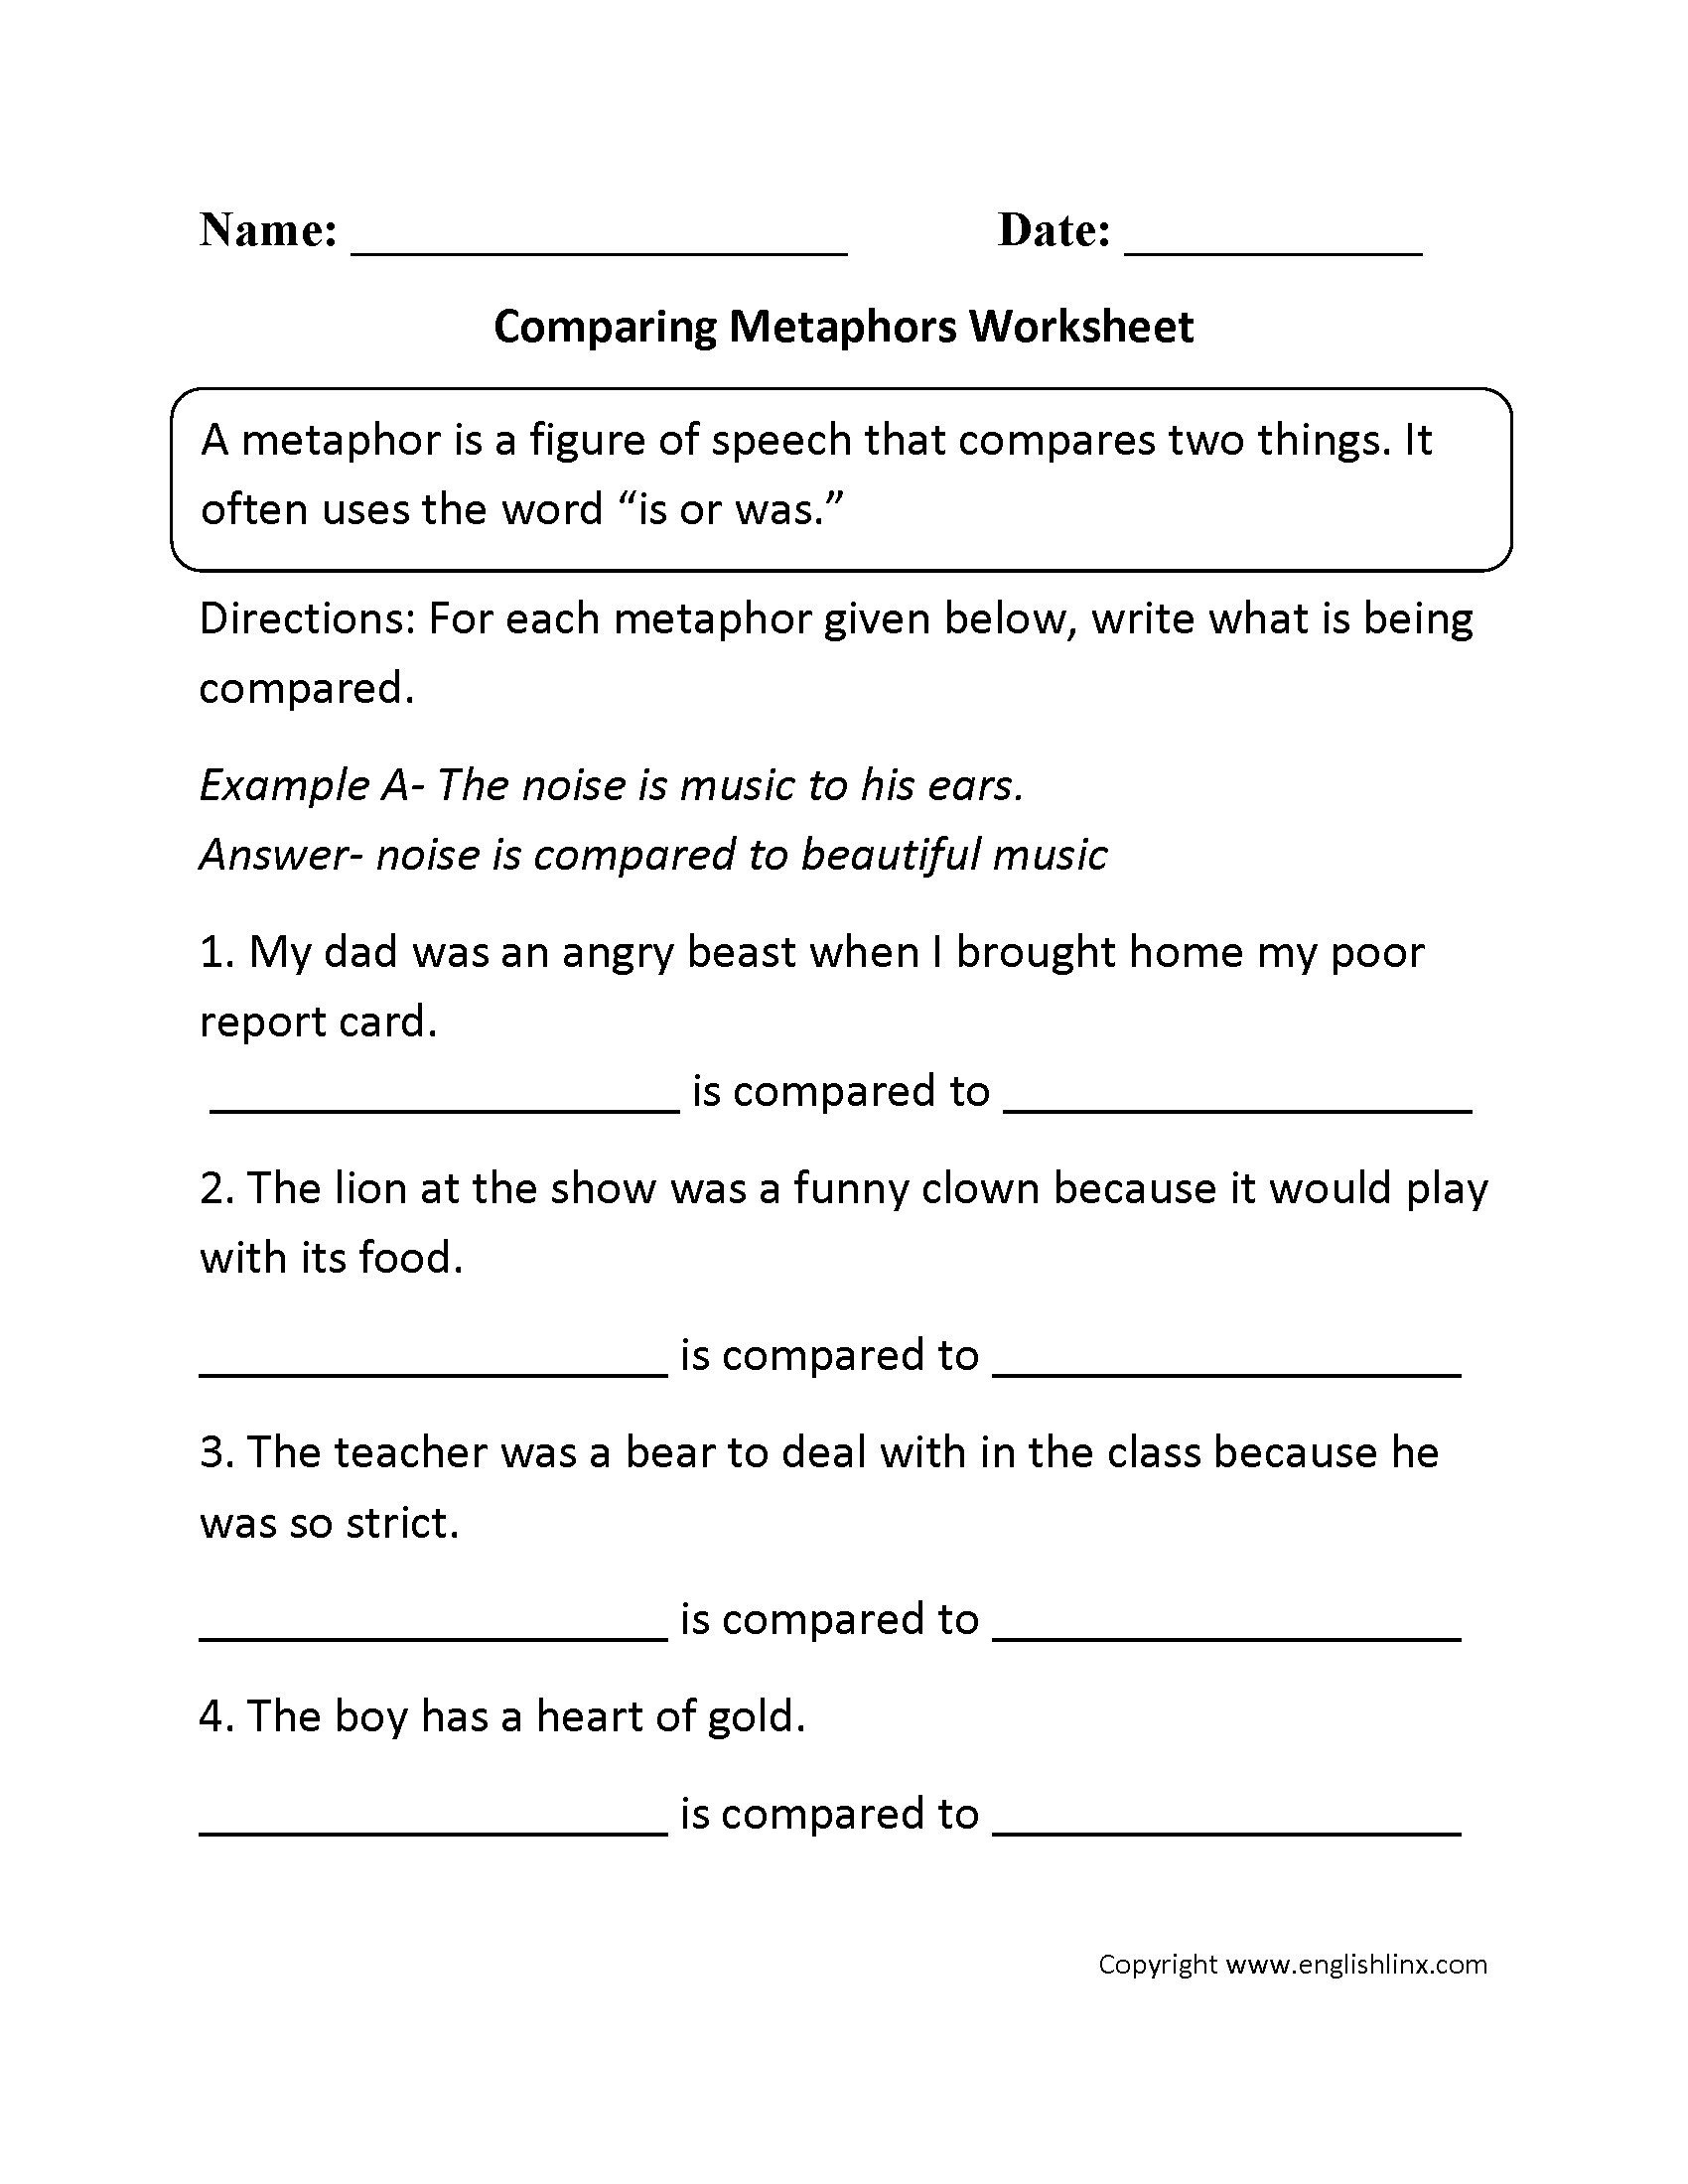 Worksheets Figures Of Speech Worksheet englishlinx com figures of speech worksheets metaphor worksheet part 1 beginner